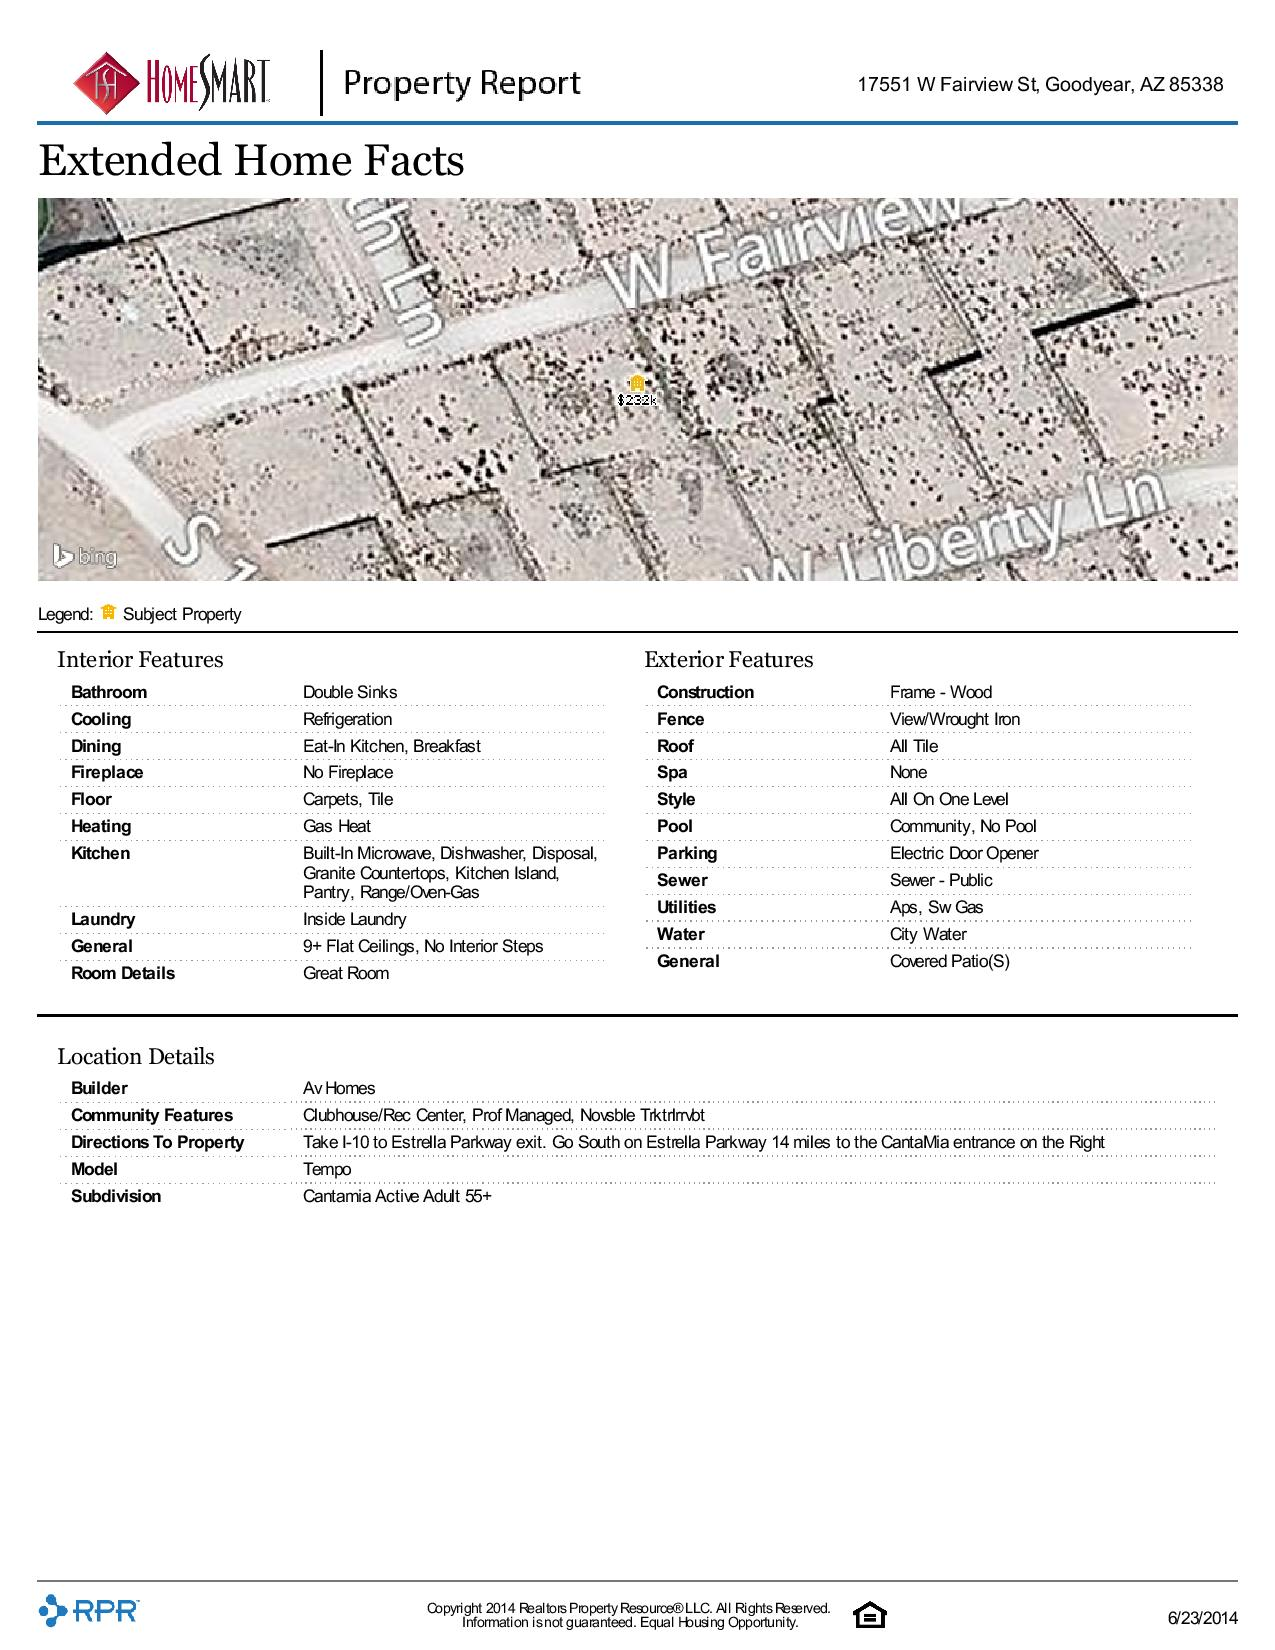 17551-W-Fairview-St-Goodyear-AZ-85338-page-004